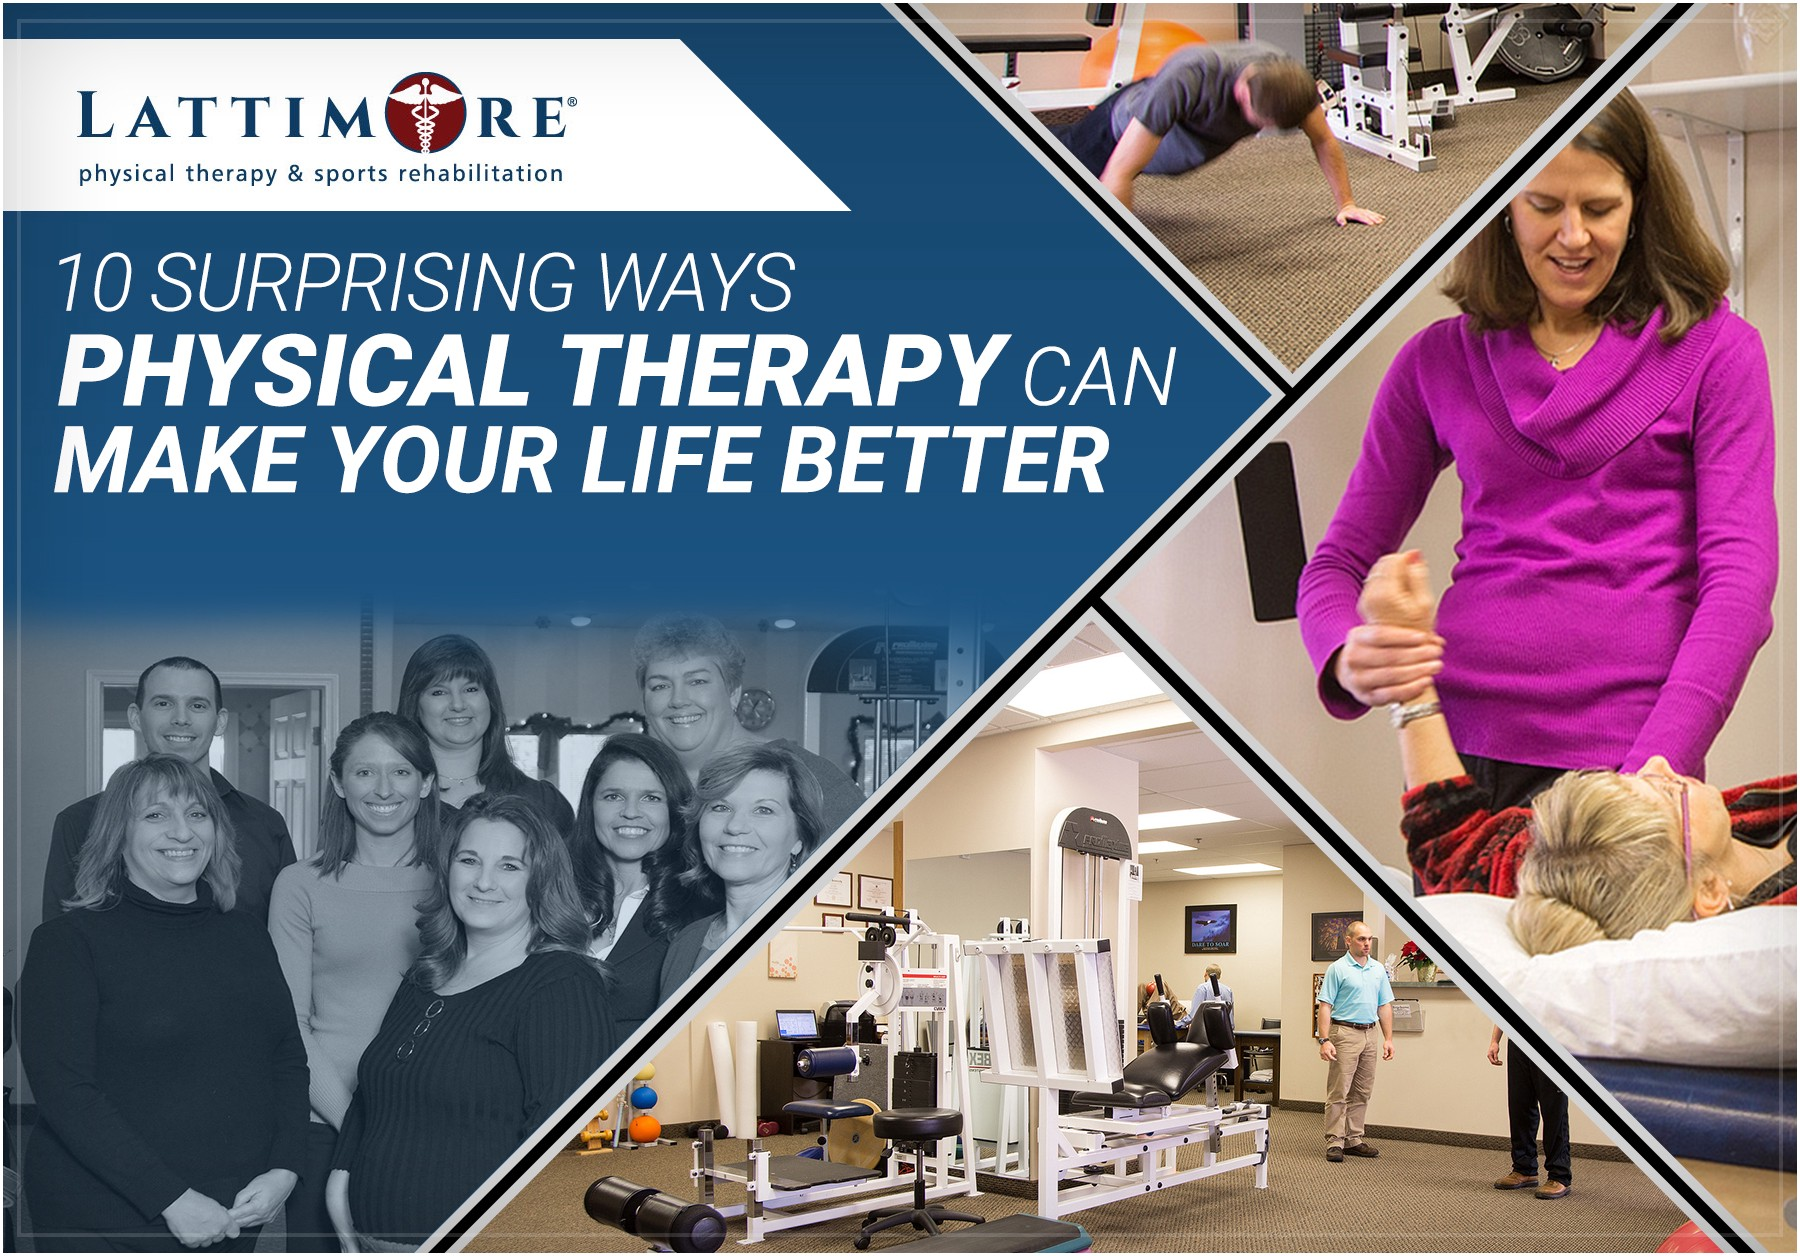 Article on physical therapy -  Note This Article Applies To The Physical Therapy Laws In The State Of New York